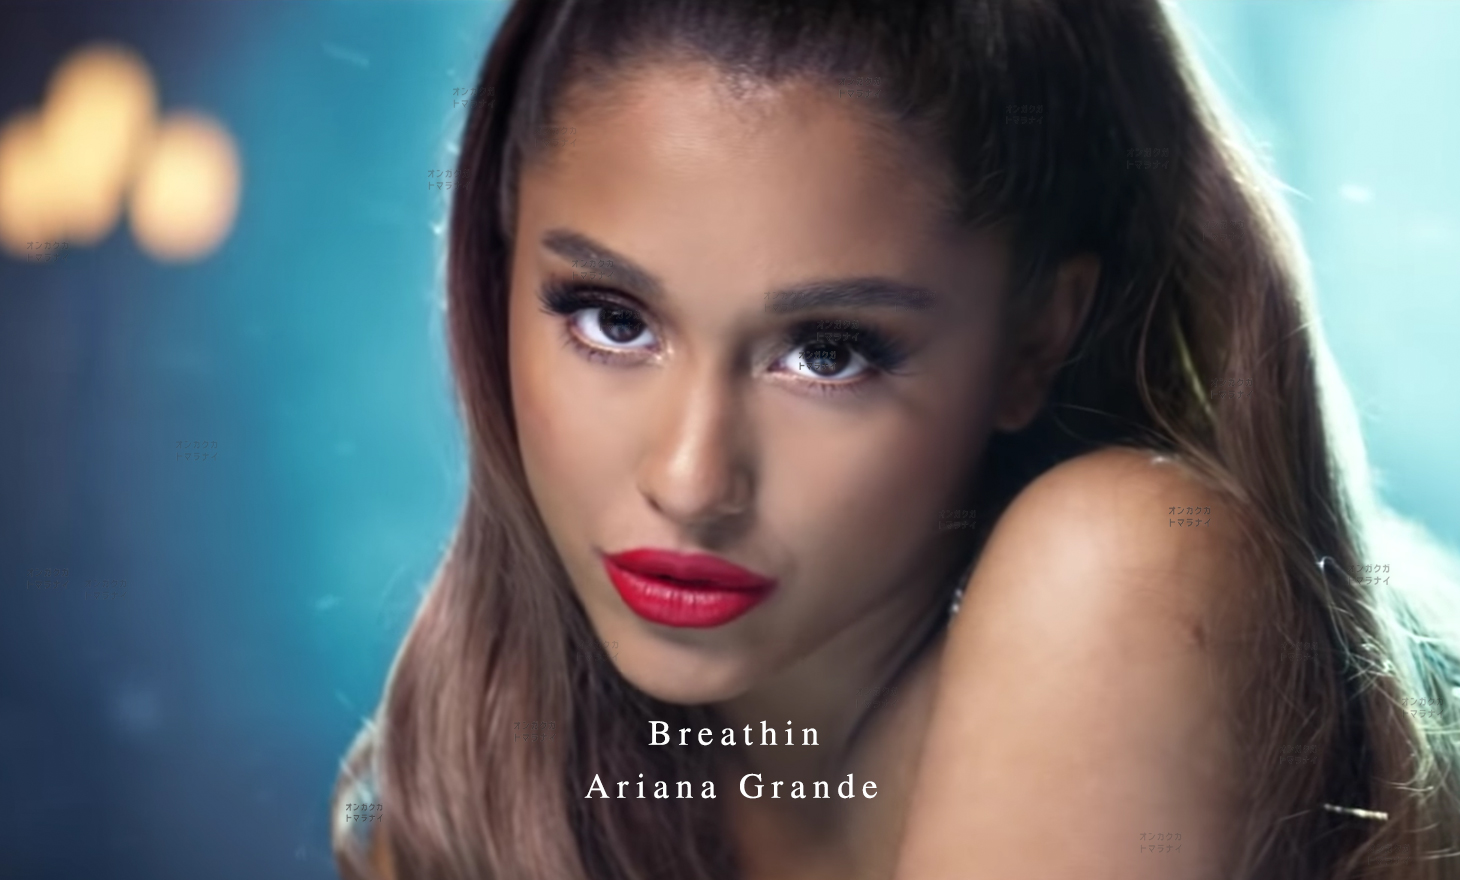 Ariana Grande : Breathin